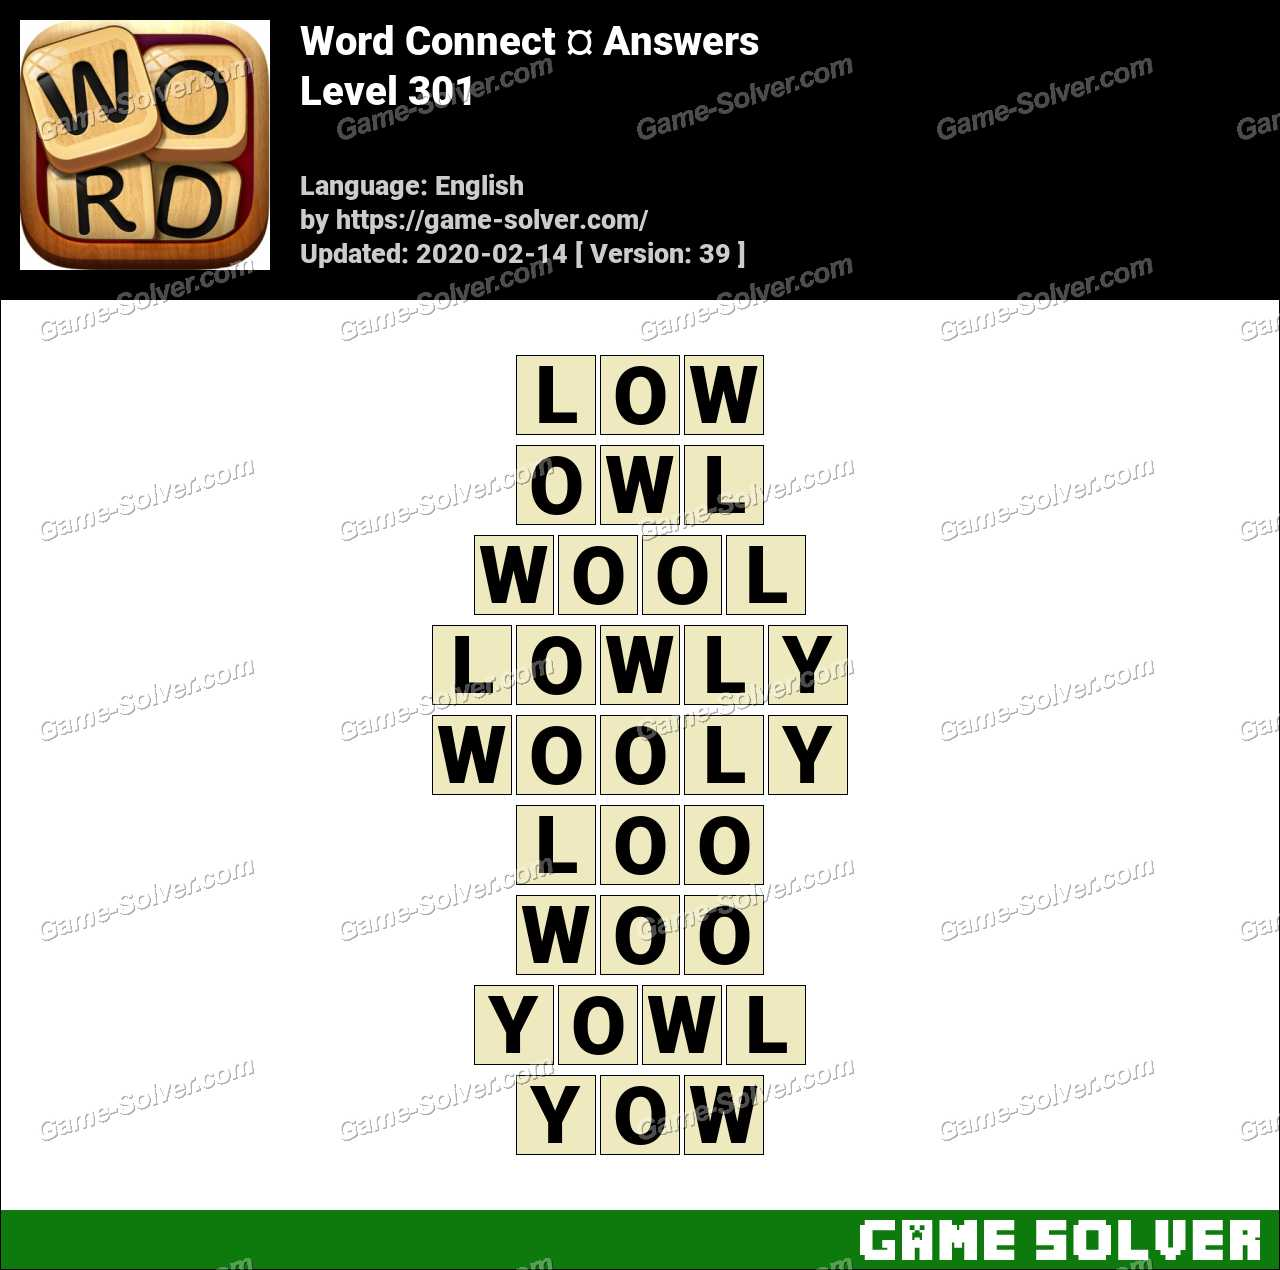 Word Connect Level 301 Answers